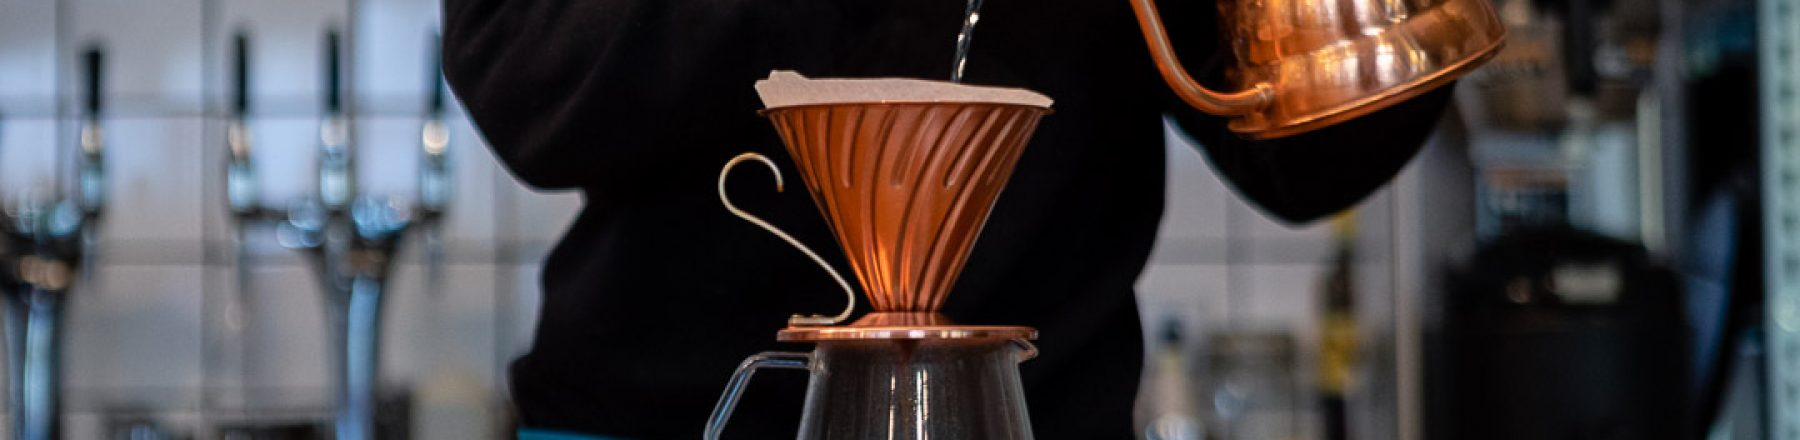 brewing pourover IG-1